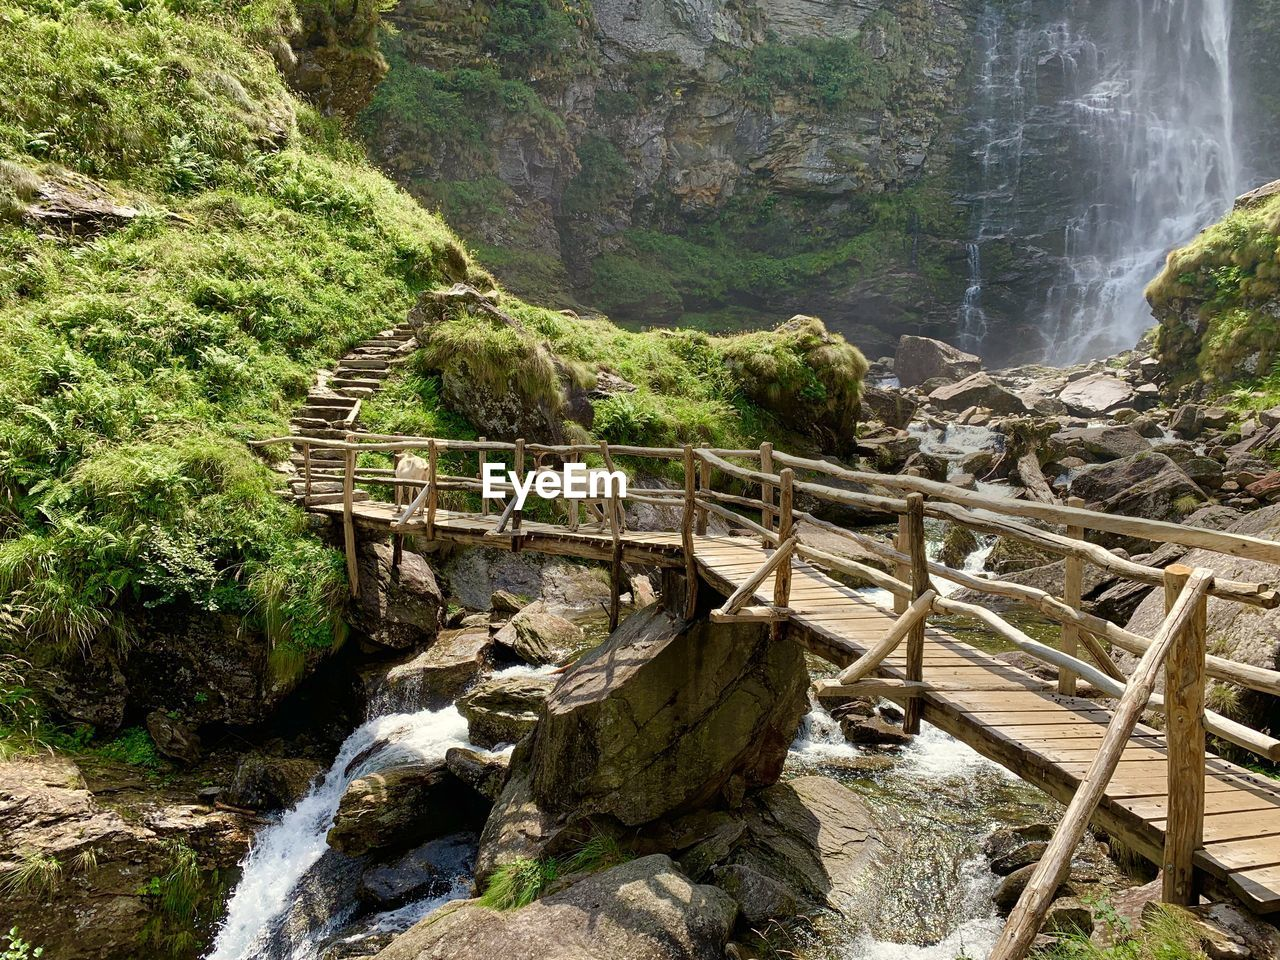 water, scenics - nature, rock, beauty in nature, solid, rock - object, nature, motion, waterfall, land, day, tree, flowing water, tranquility, no people, plant, wood - material, non-urban scene, tranquil scene, outdoors, flowing, footbridge, stream - flowing water